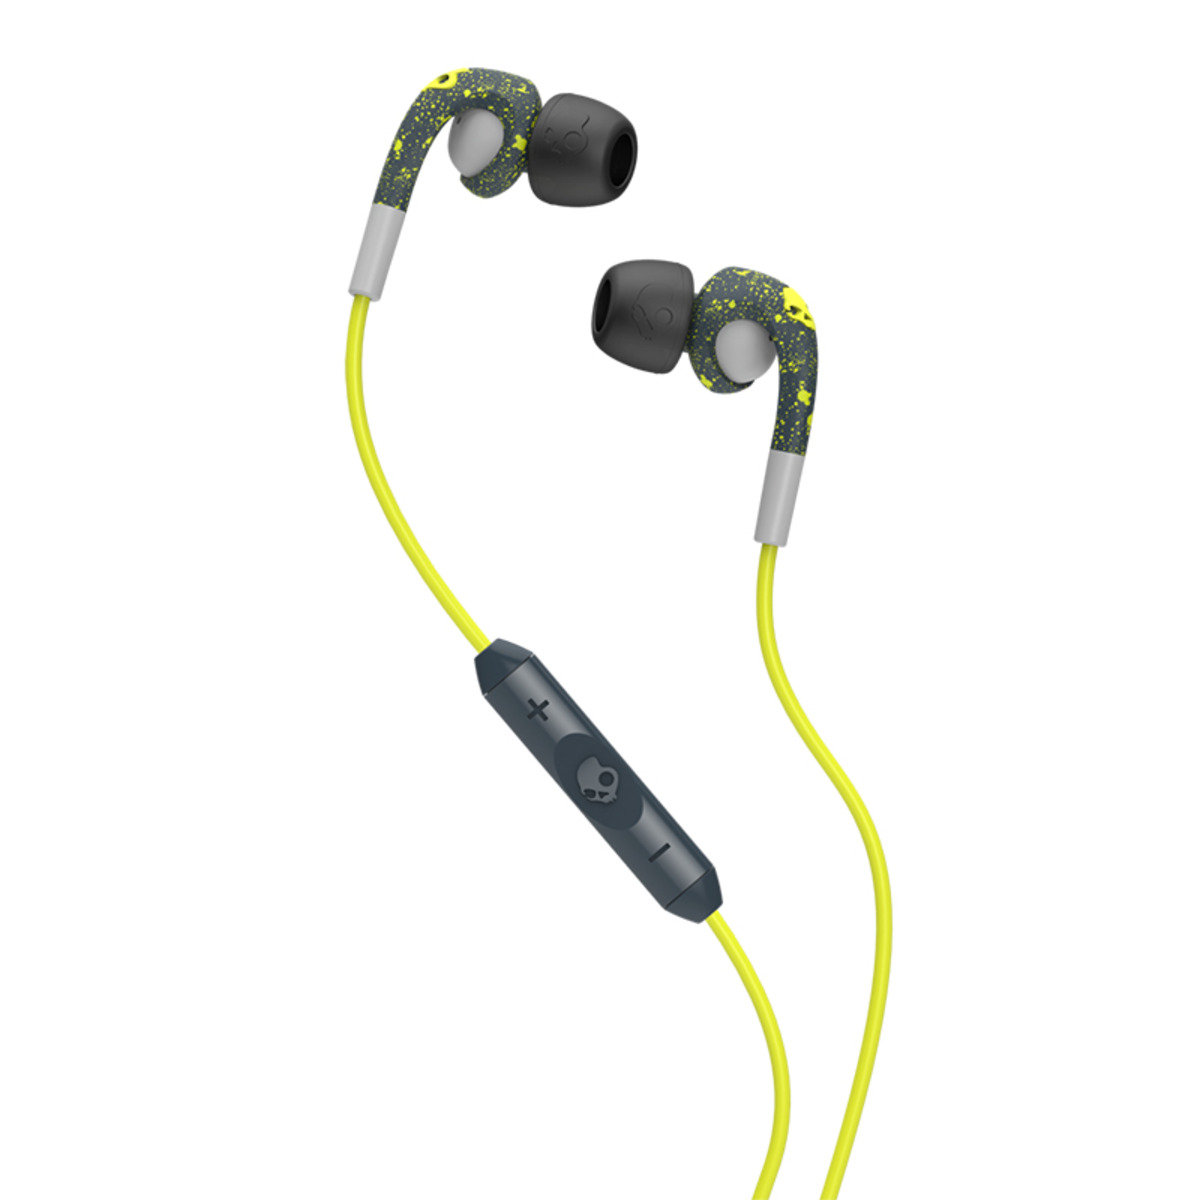 FIX In Ear DK GRY/LGT GRY/HOT LIME Mic3